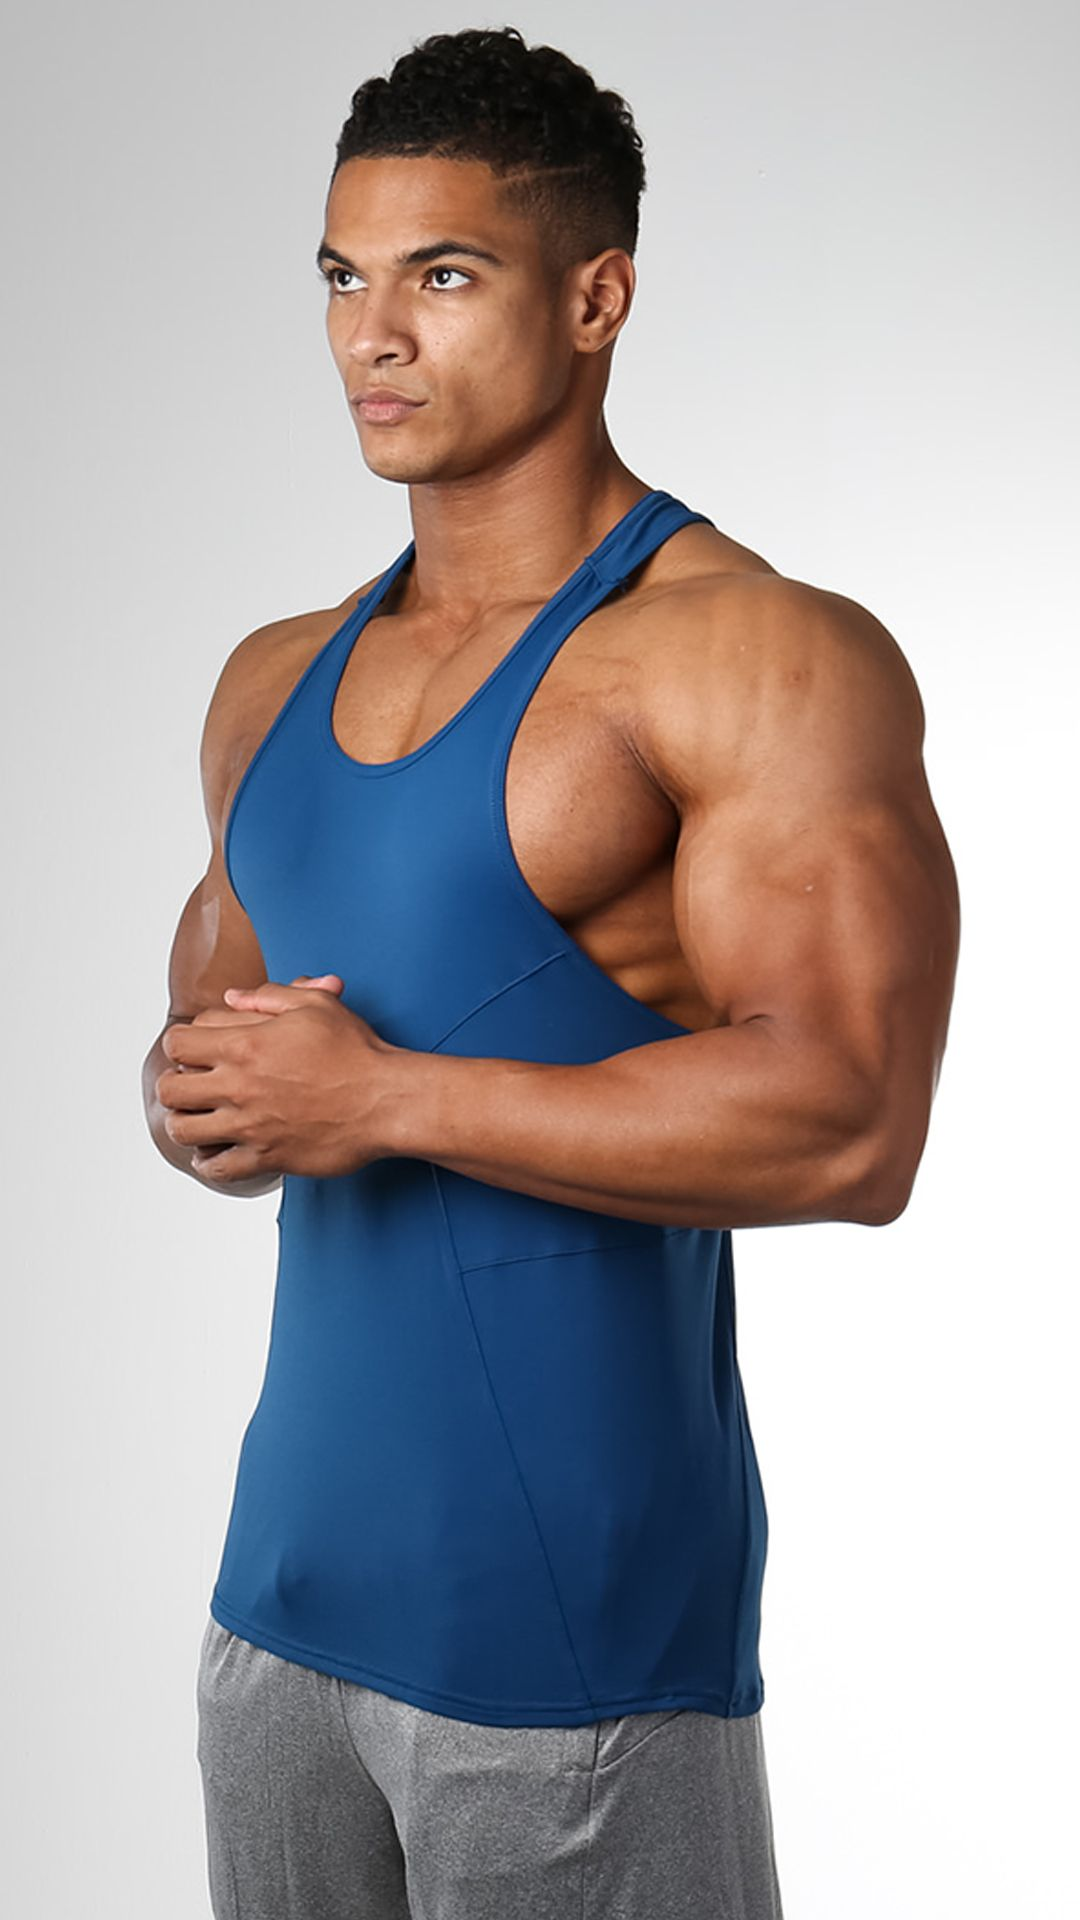 33a8651249db0 Element Stringer Atlantic Blue The Gymshark DRY Element Gym Stringer has  moisture wicking technology and stretch fit for comfort in intense  situations.